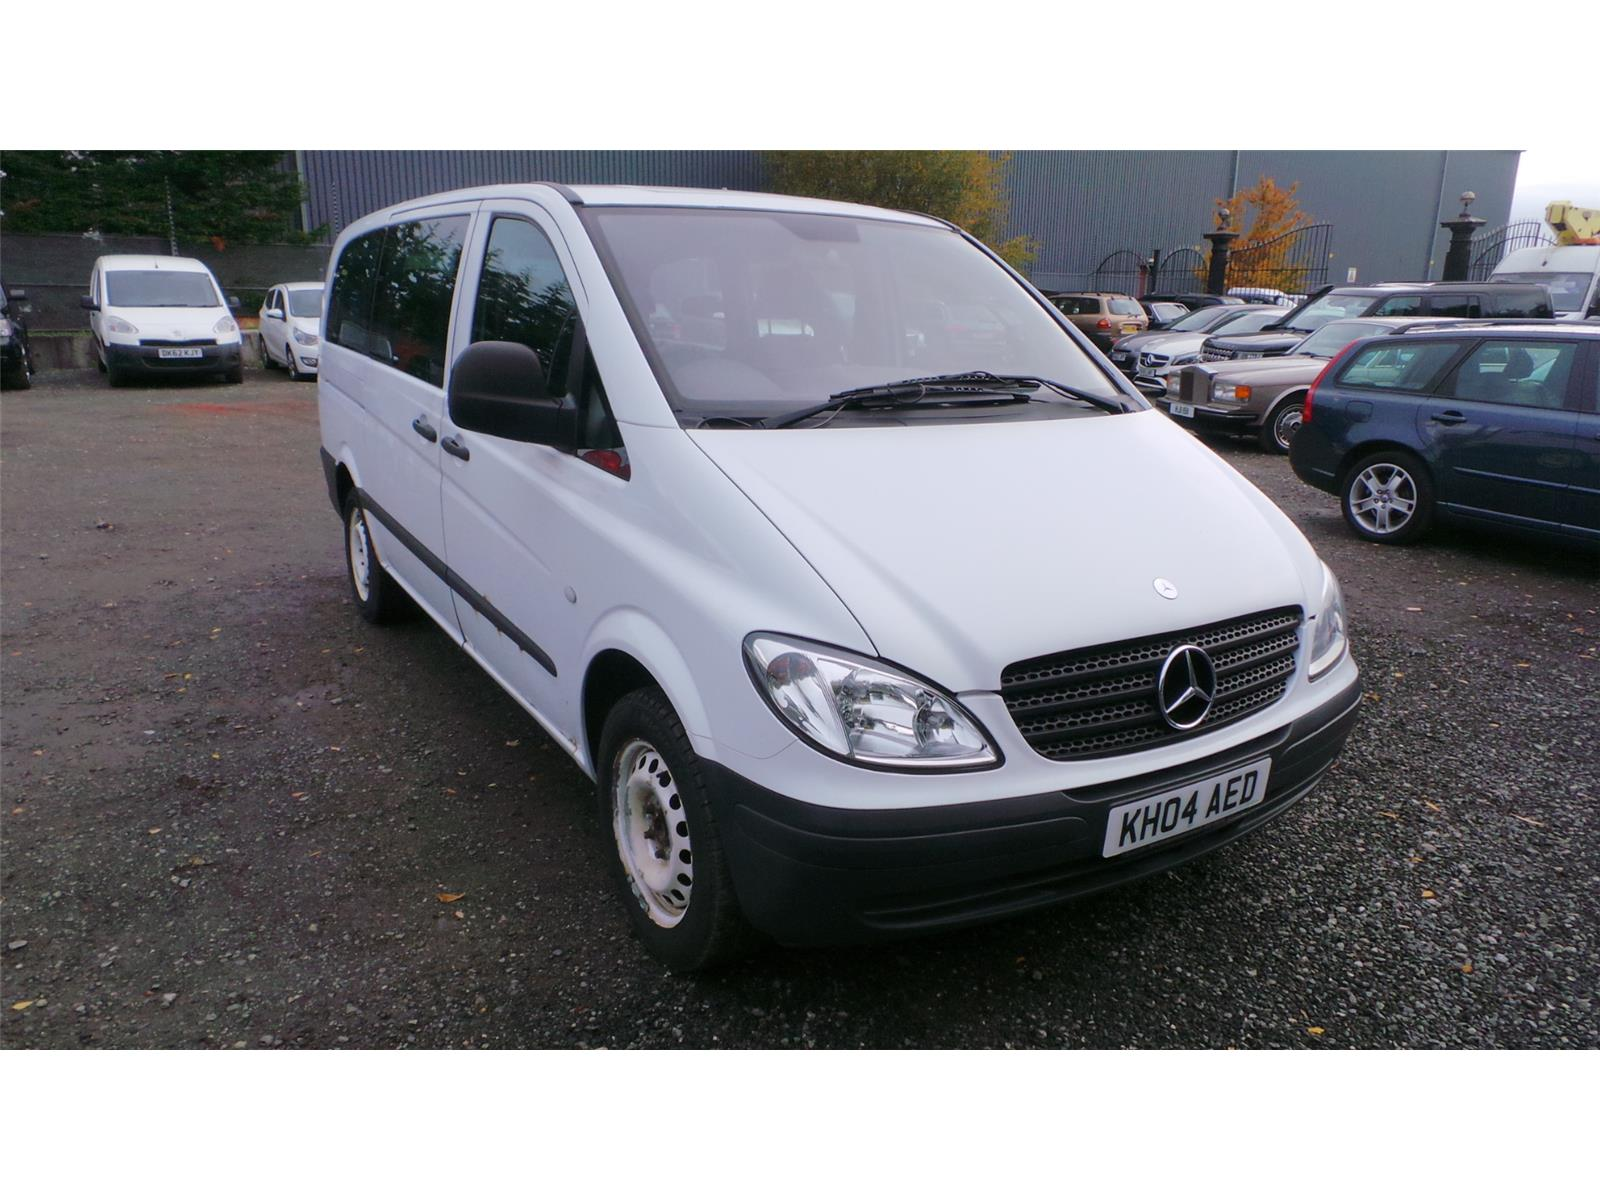 2004 Mercedes-Benz Vito 109 LONG CDi 2148 Diesel Manual 6 Speed L.C.V.